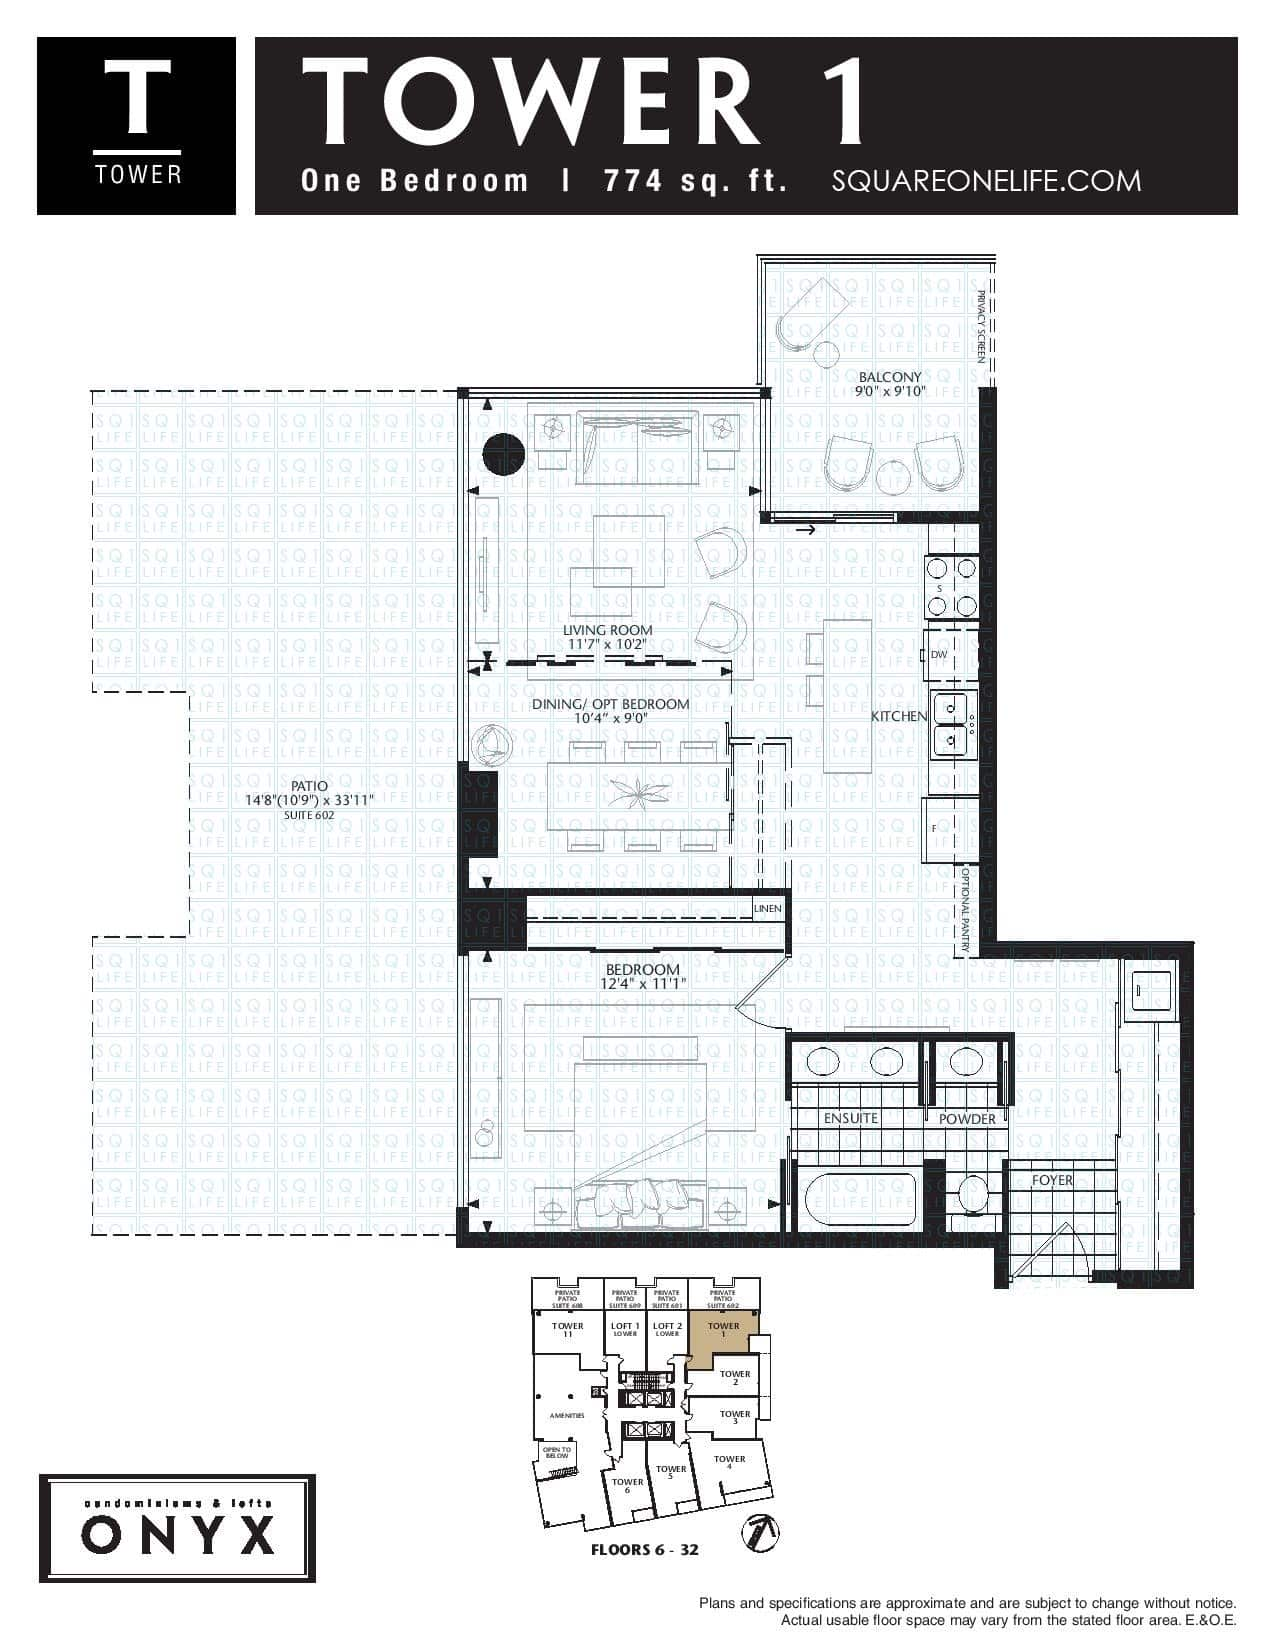 223-Webb-Dr-Onyx-Condo-Floorplan-Tower-1-1-Bed-2-Bath onyx condo Onyx Condo 223 Webb Dr Onyx Condo Floorplan Tower 1 1 Bed 2 Bath